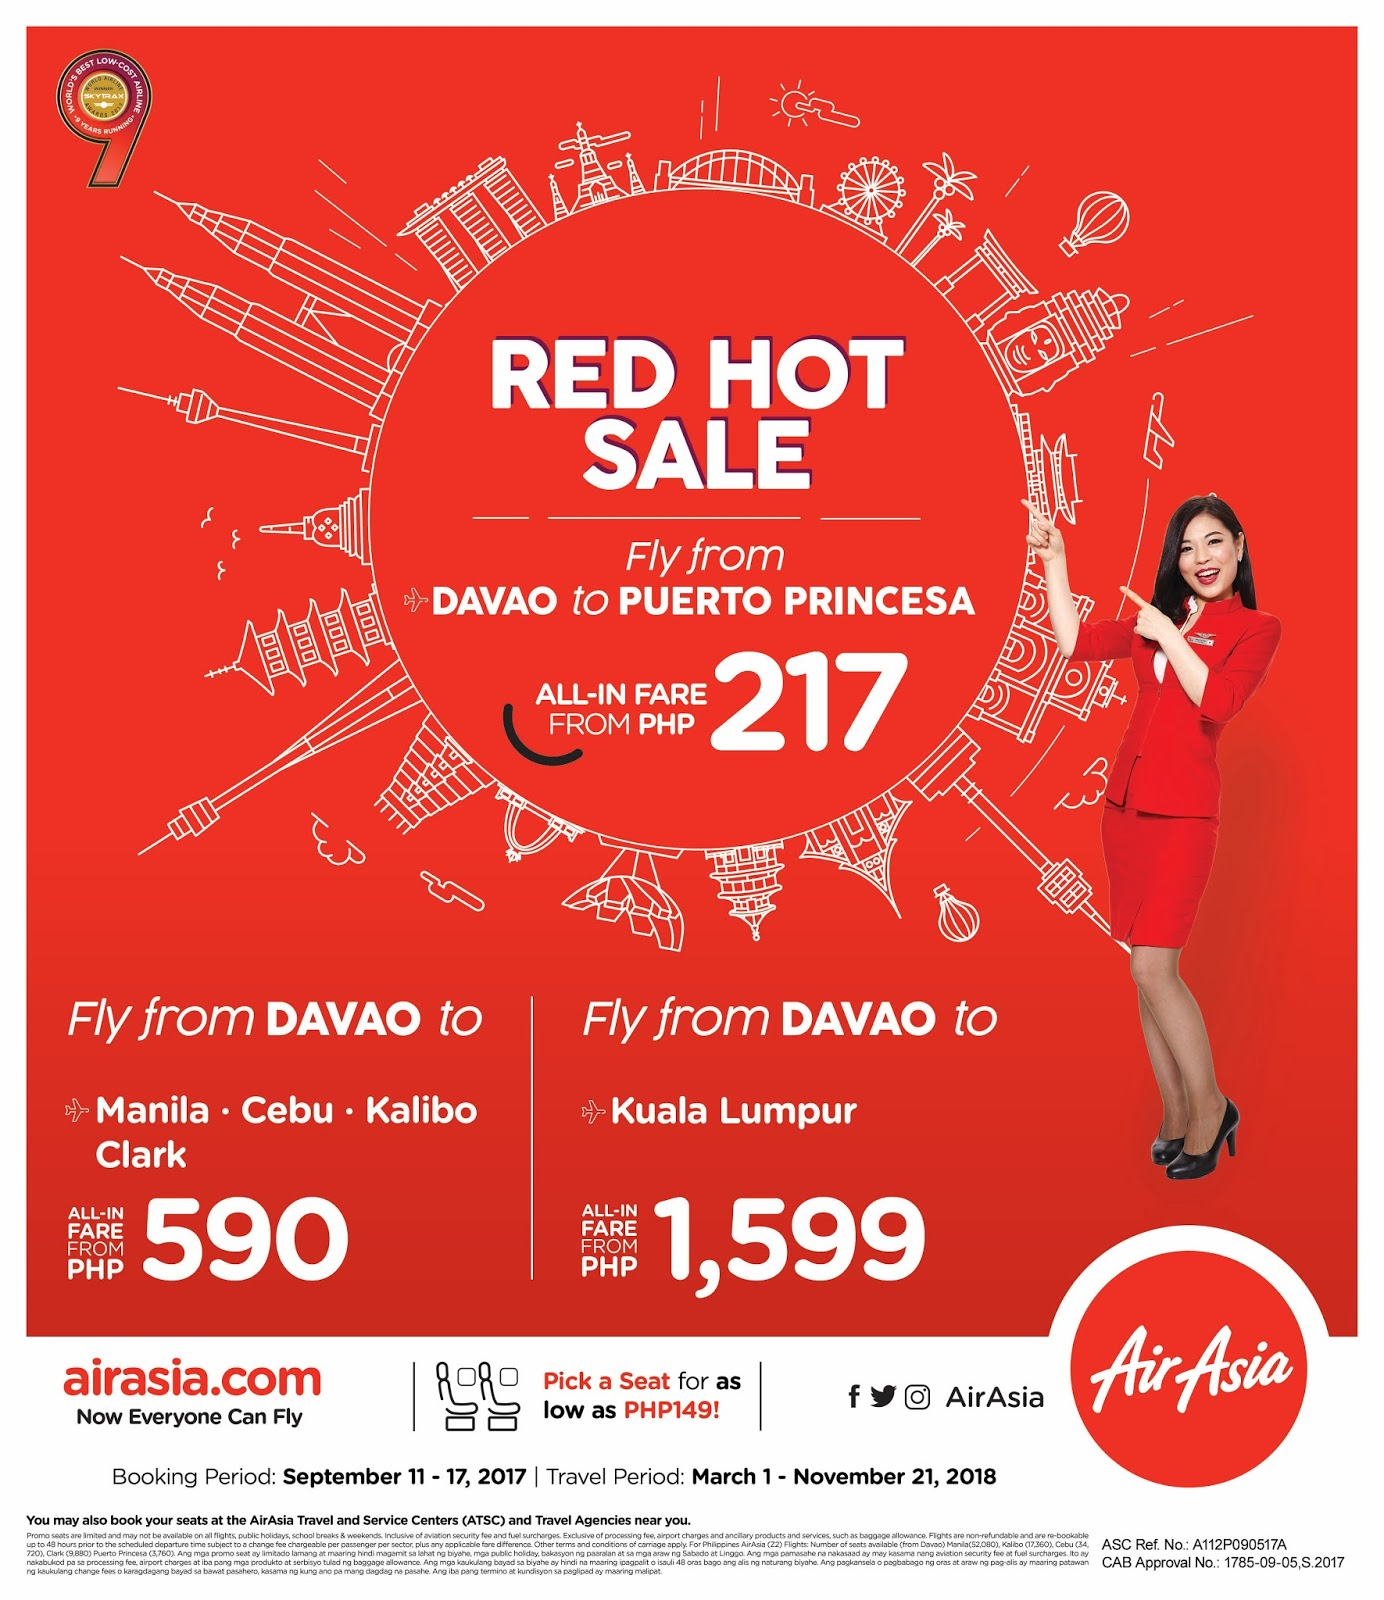 AirAsia Red Hot Sale Davao